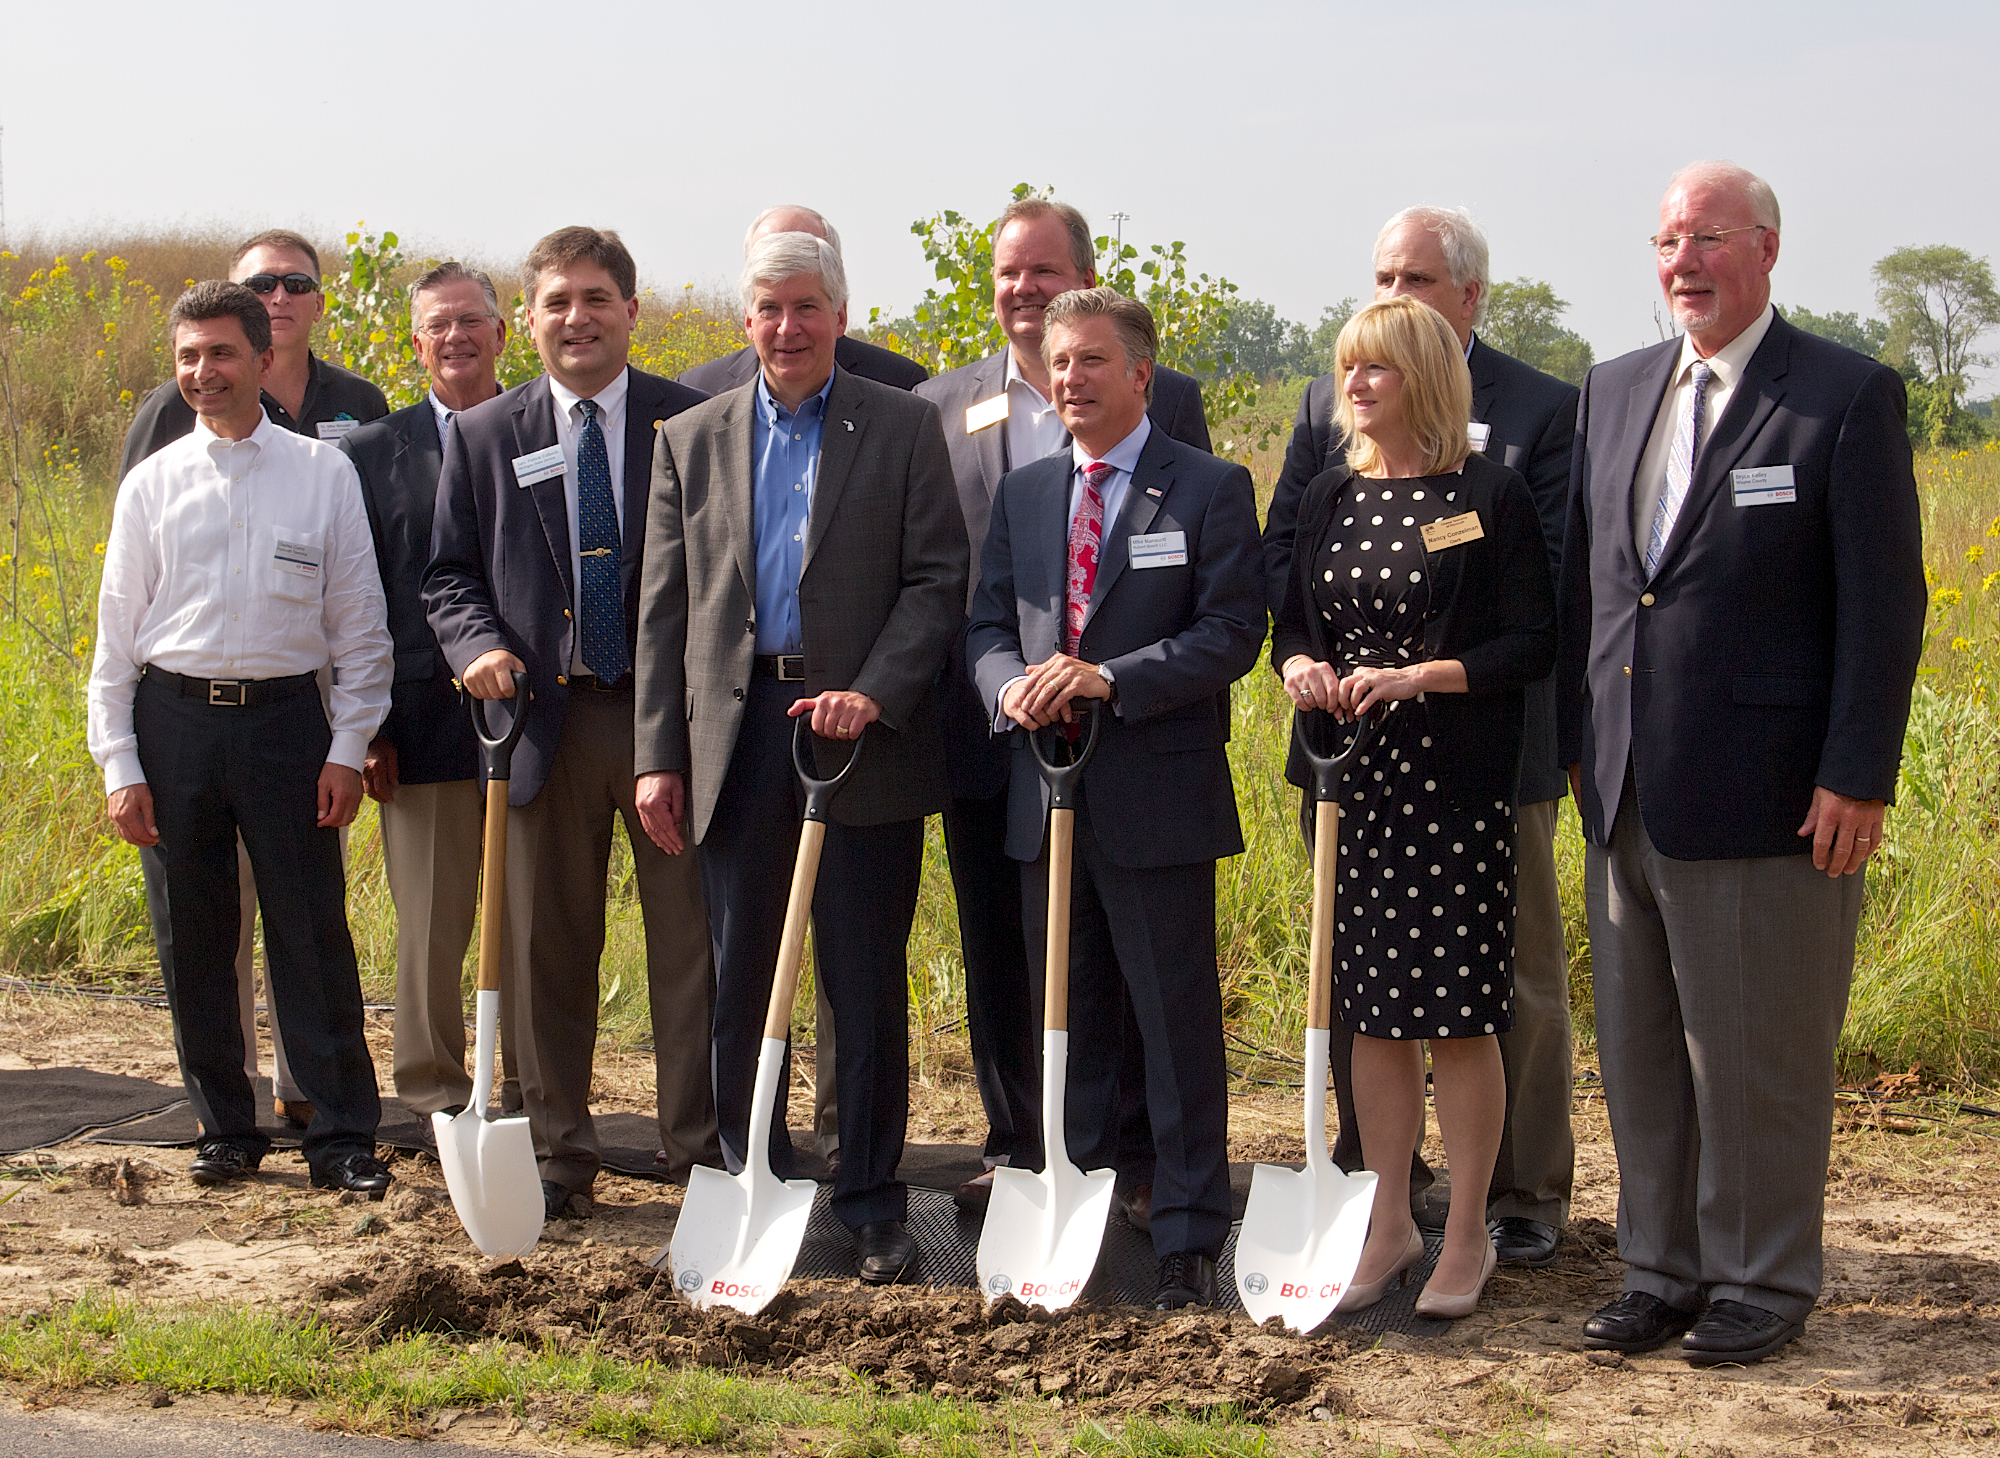 Bosch Ground Breaking Dignitaries shovel